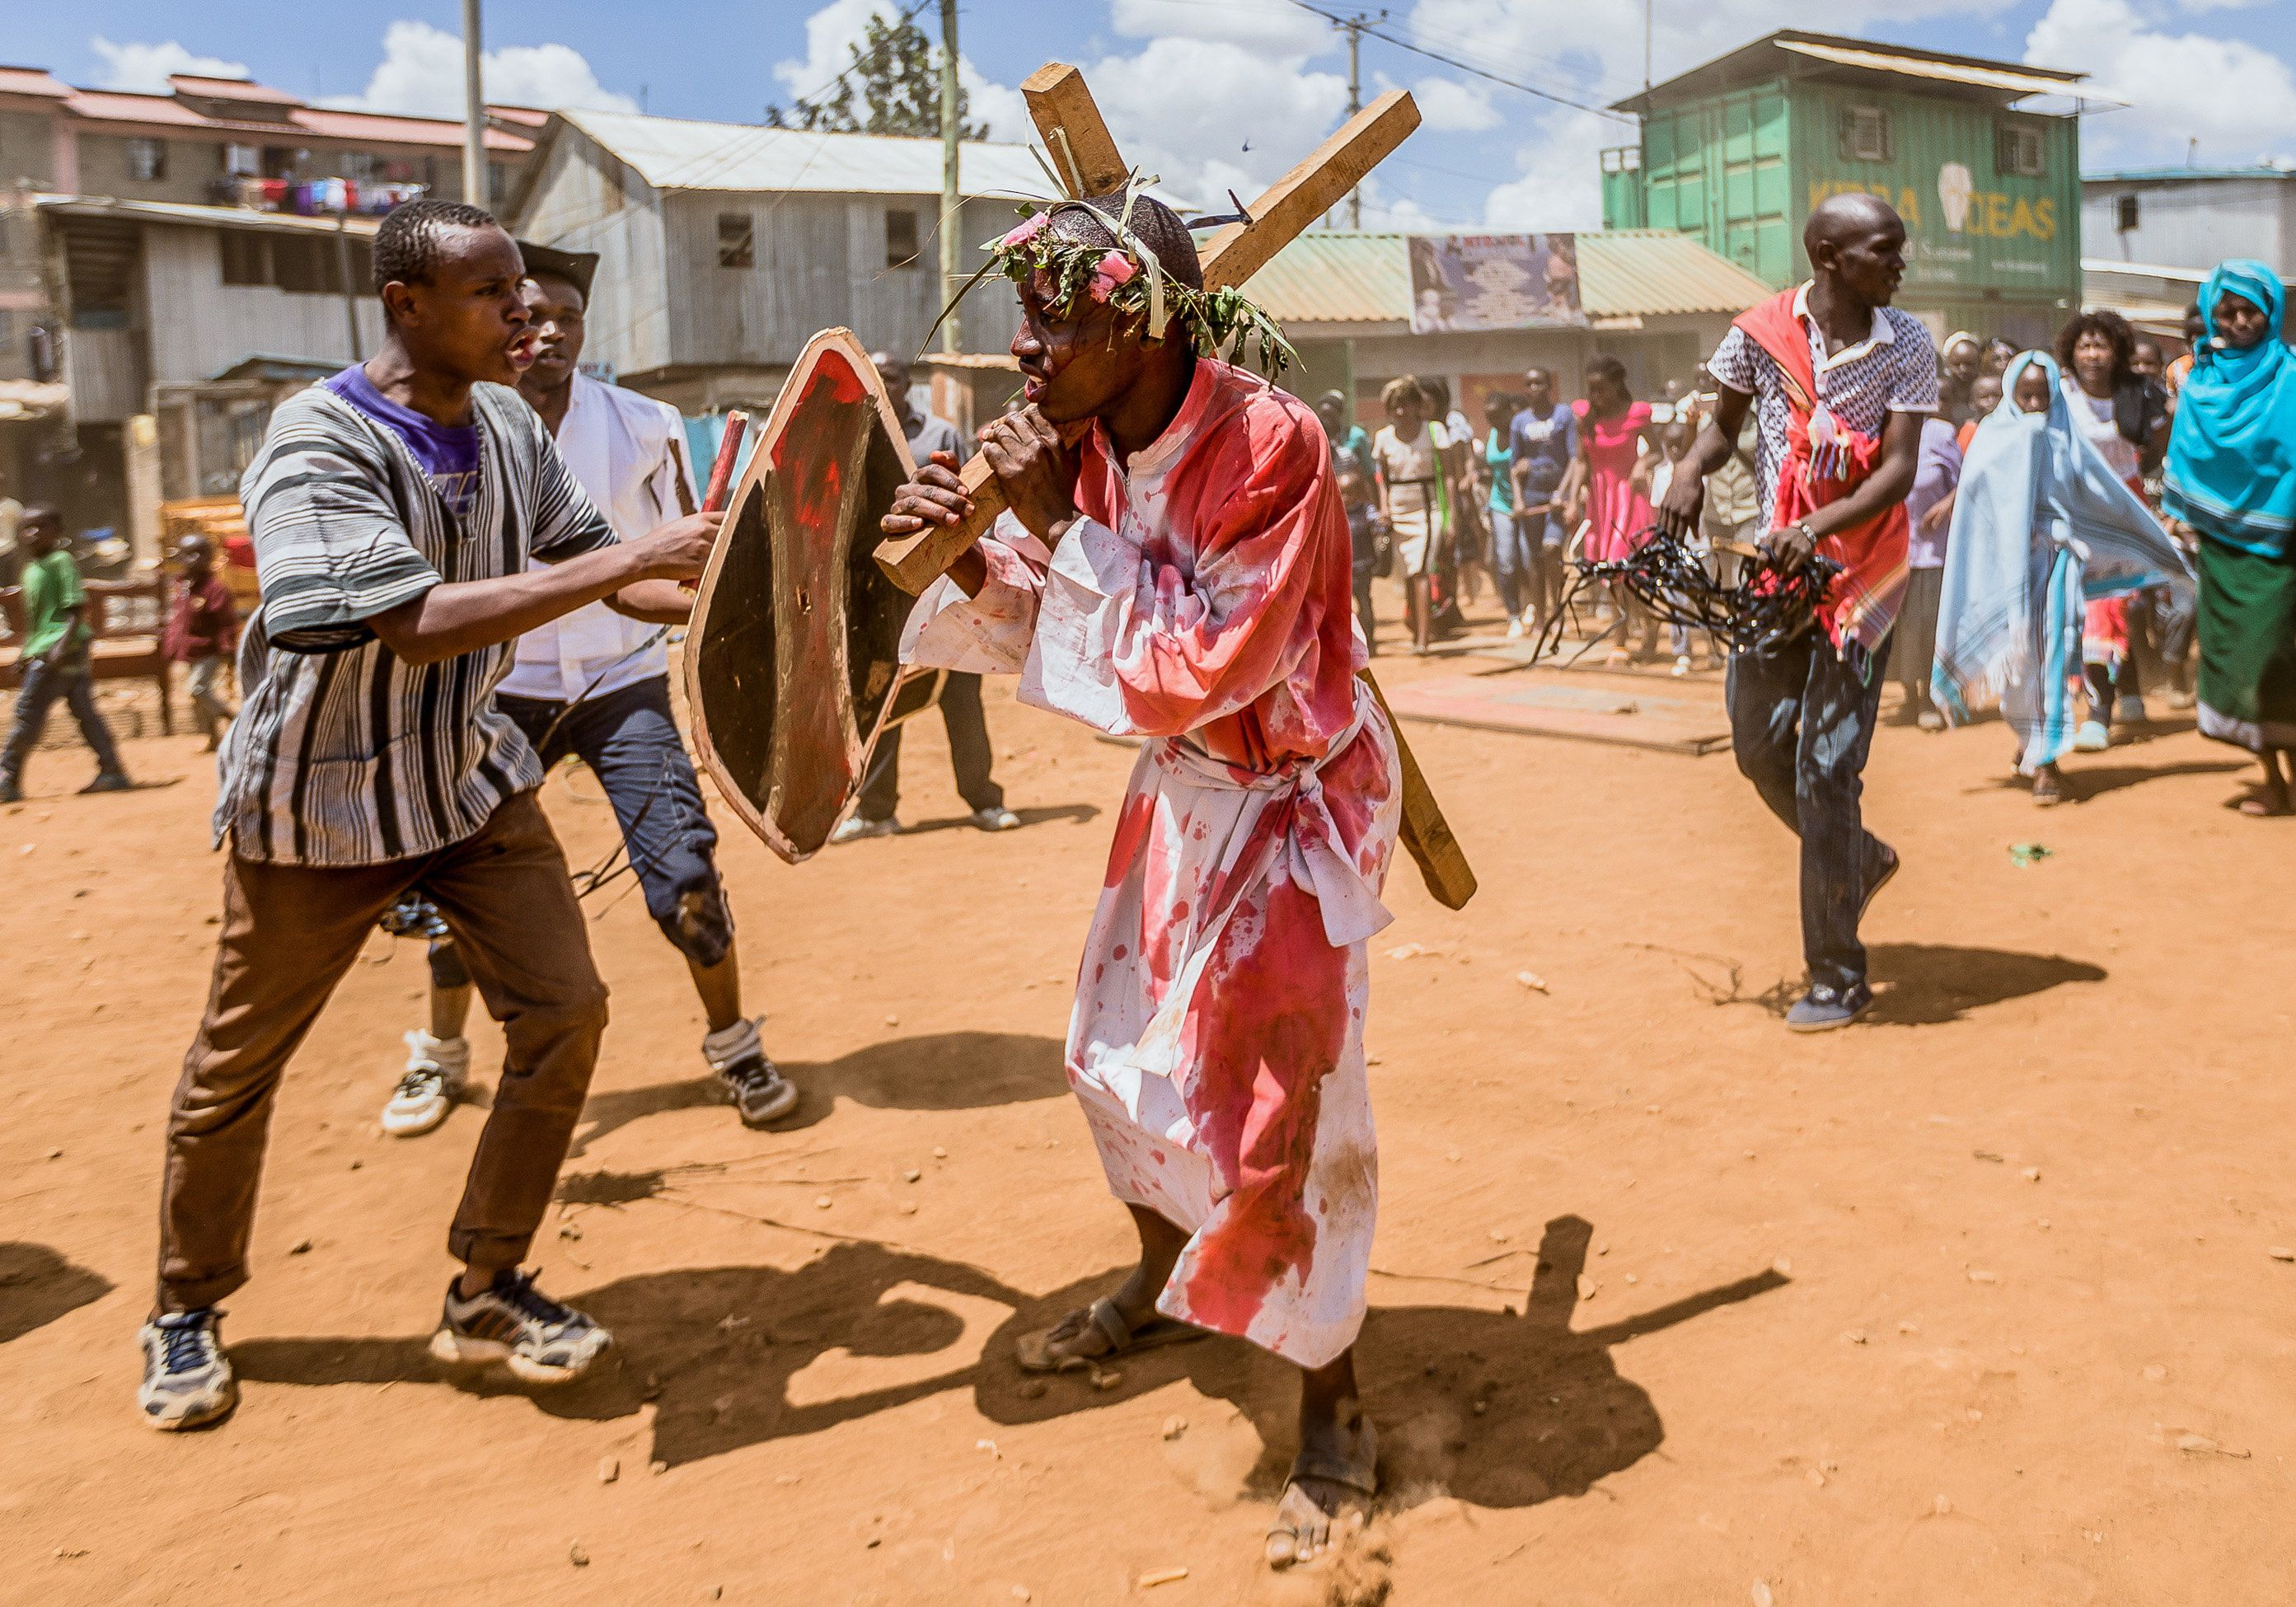 Christian devotees reenact the Way of the Cross, or Jesus Christ's passion, during a Good Friday commemoration in the Kibera slum of Nairobi on April 19, 2019. (Photo by Brian OTIENO / AFP)        (Photo credit should read BRIAN OTIENO/AFP/Getty Images)